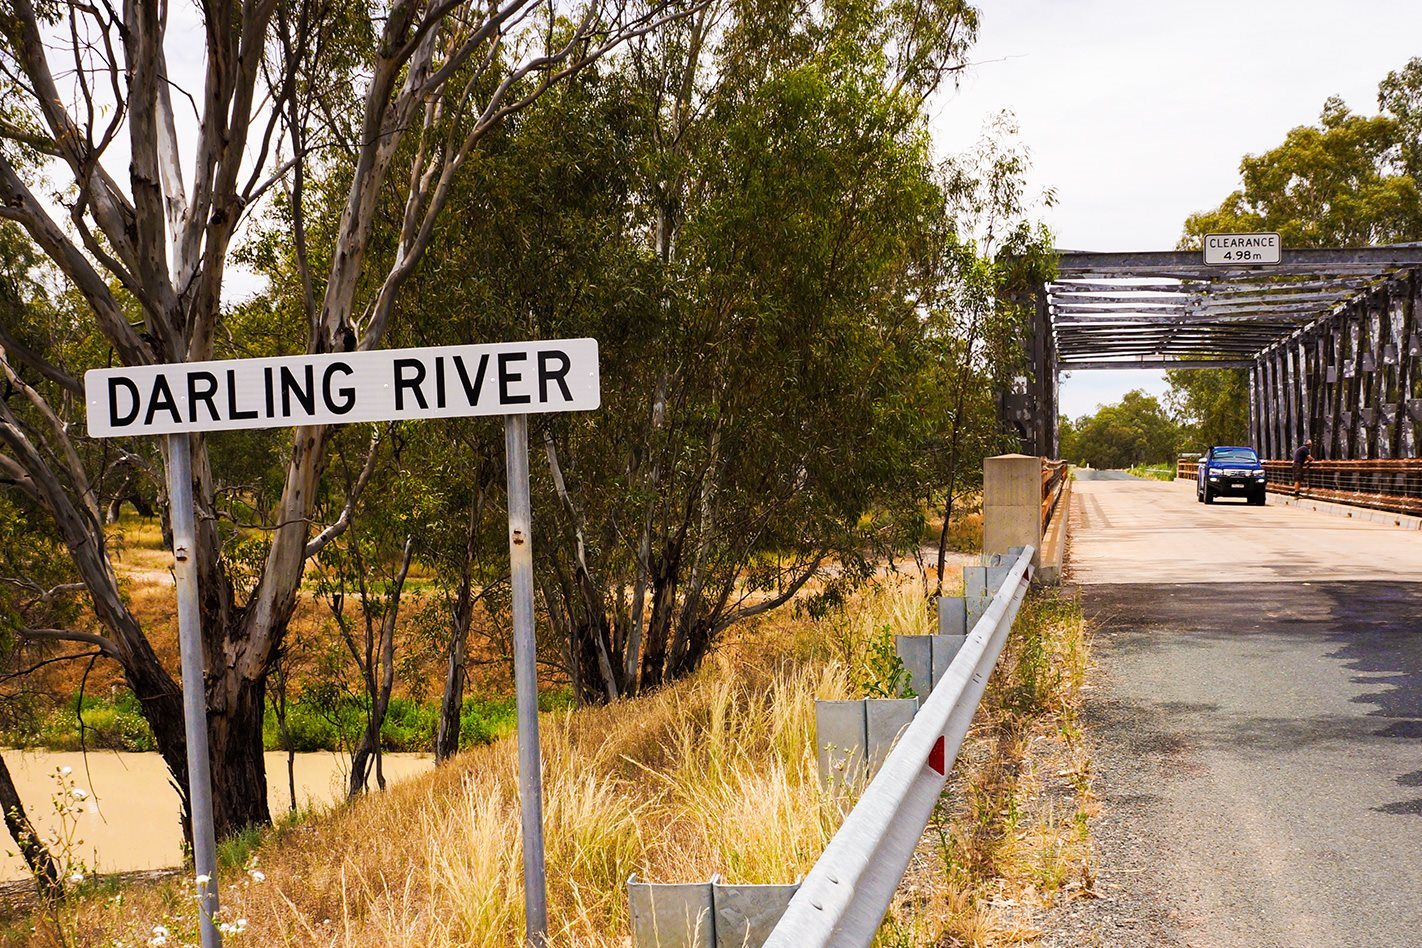 Darling River NSW